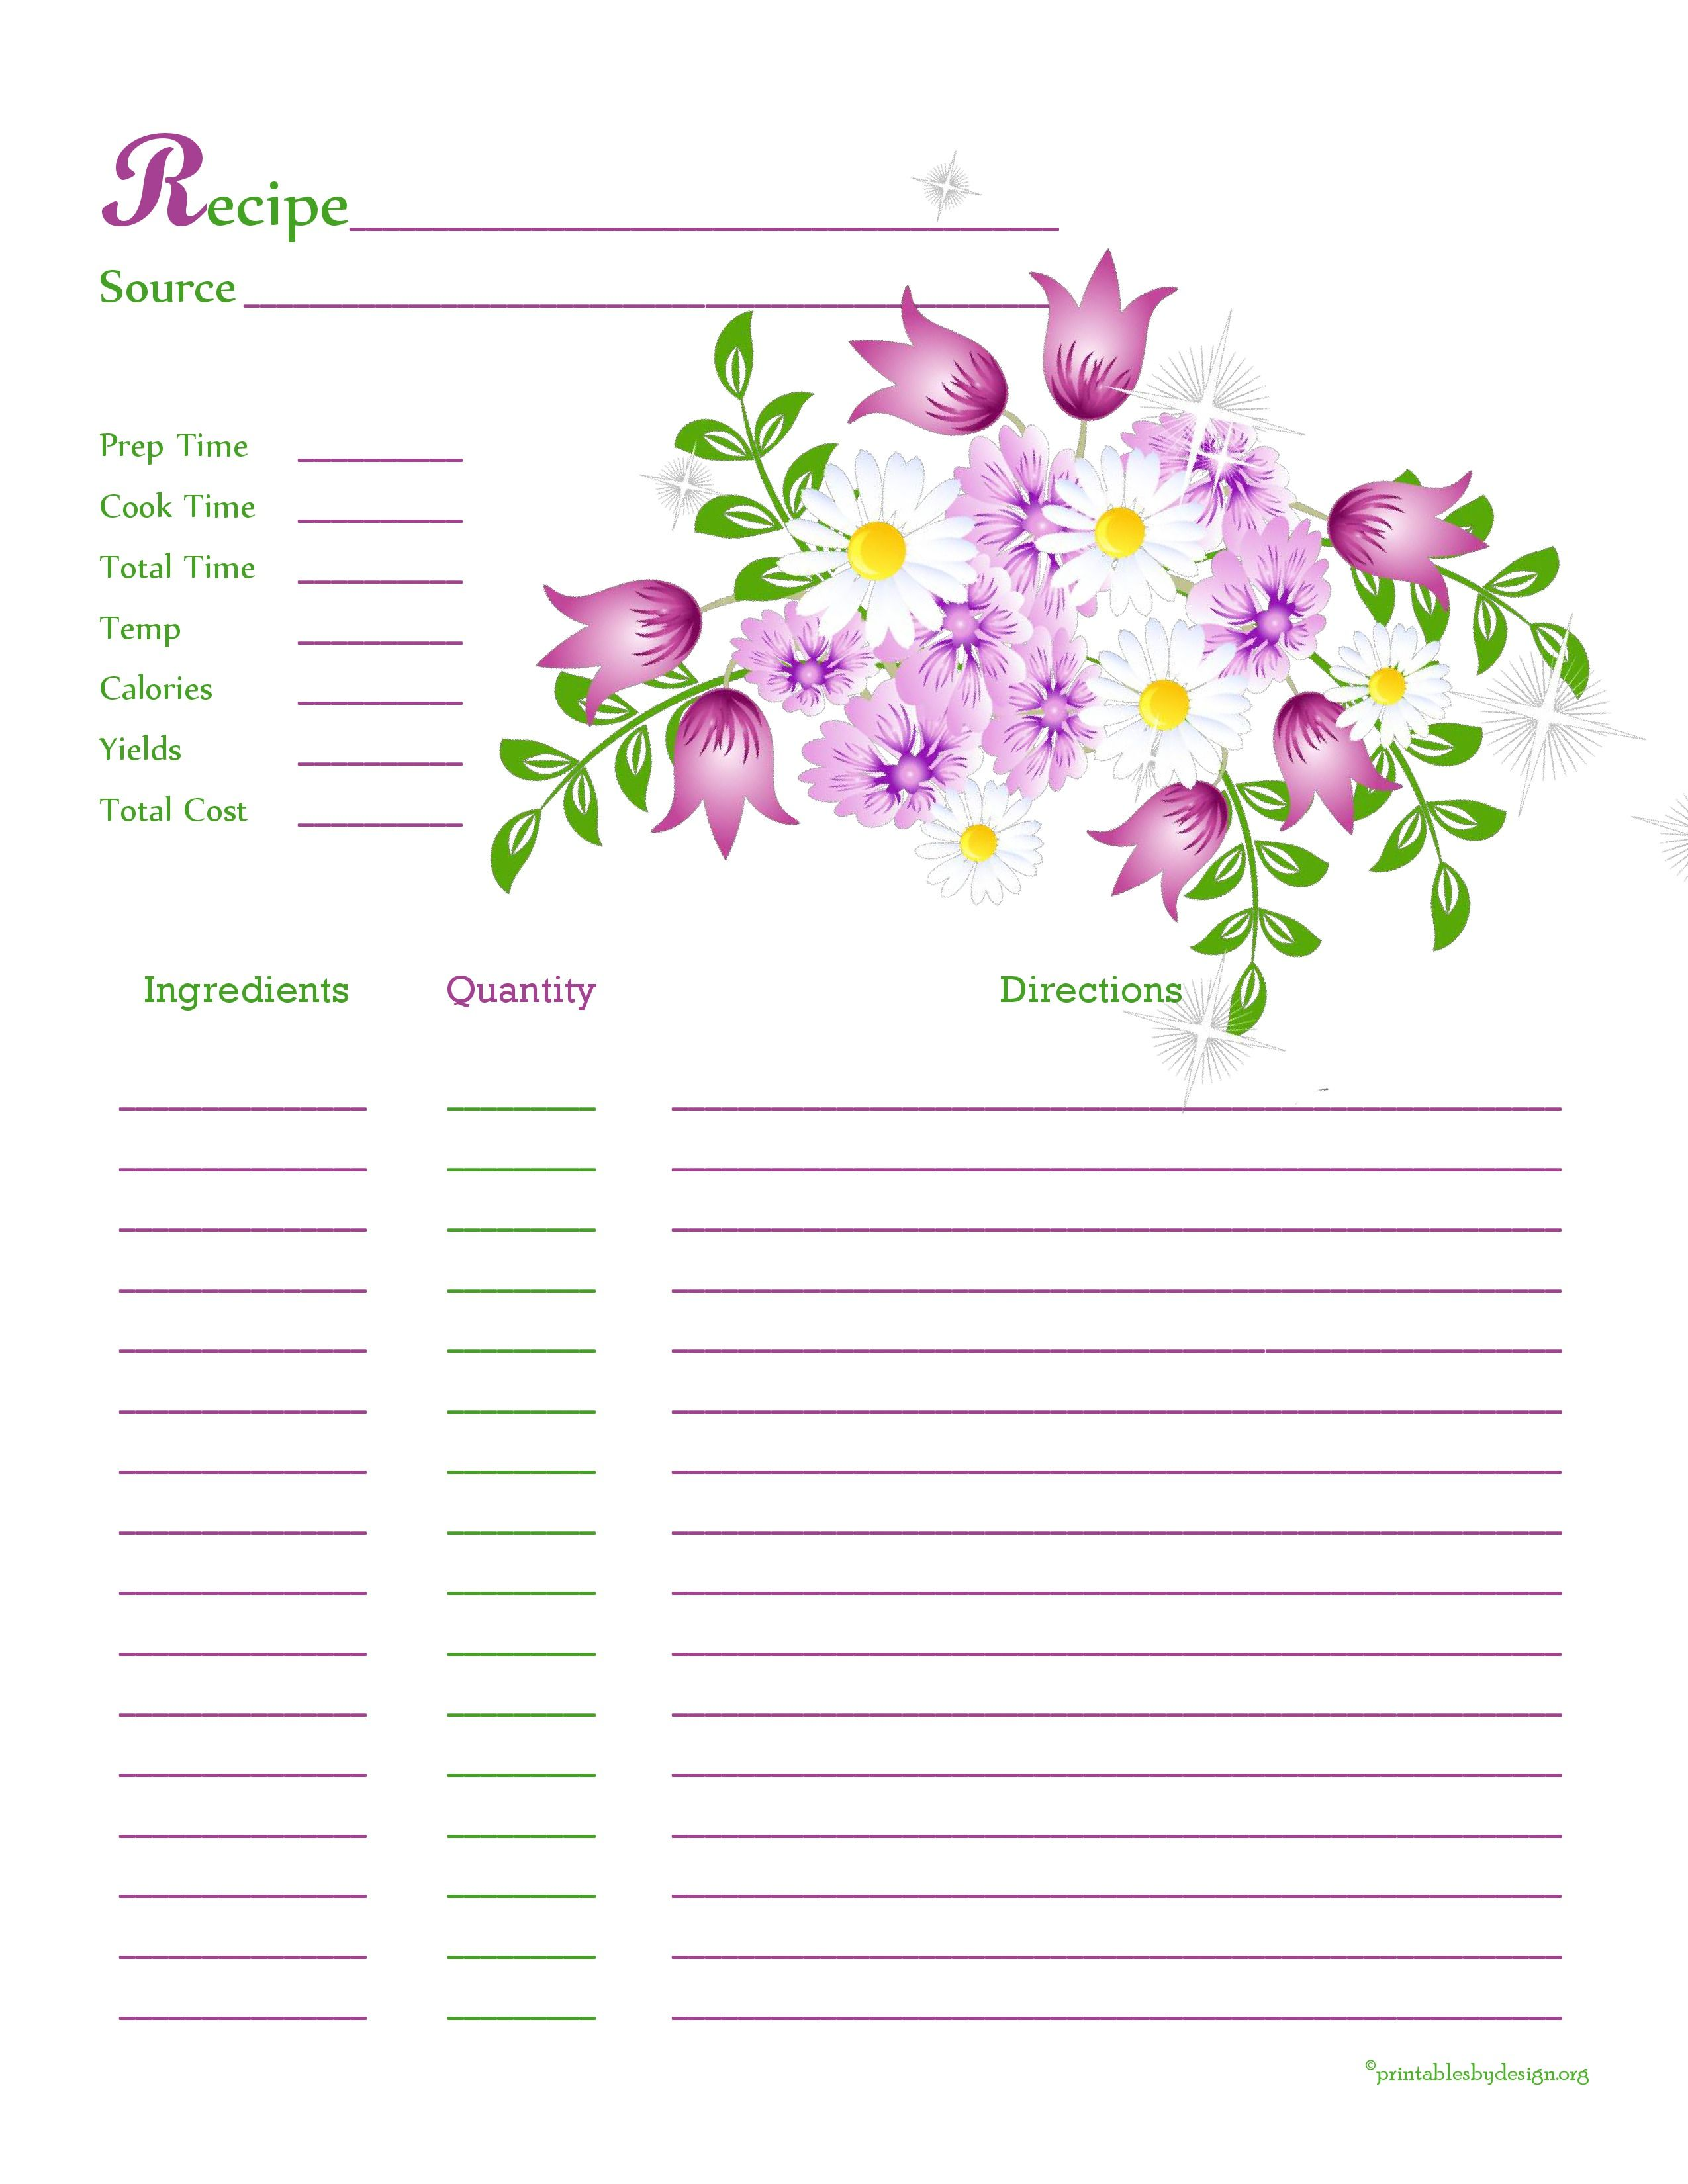 Purple White Flower Recipe Card Full Page The Preview Of This Is Blurry But It Prints Really Ni Recipe Cards Recipe Cards Template Printable Recipe Cards